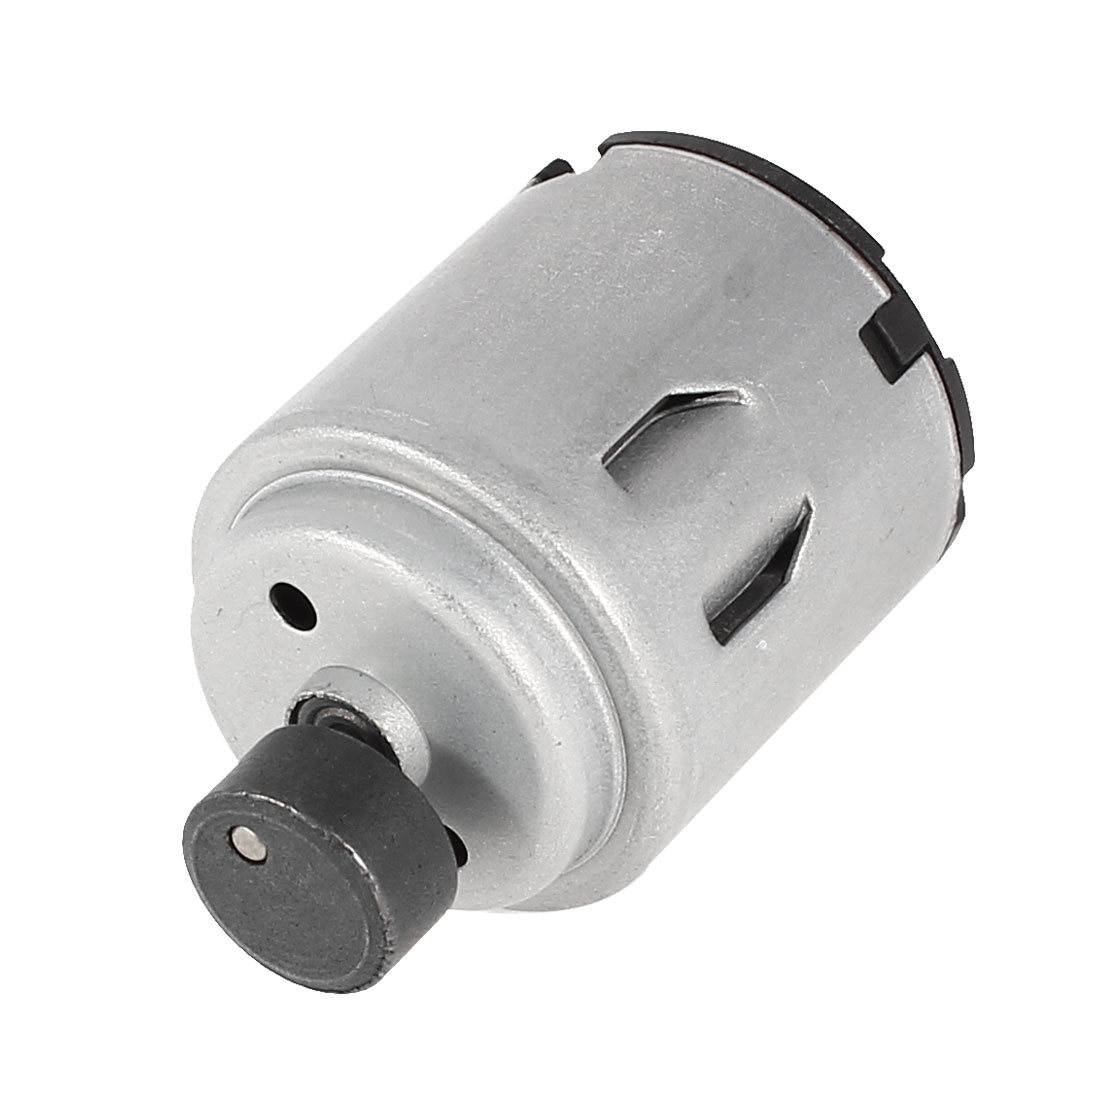 1000RPM High Speed DC 3V-12V Micro Vibration Motor Replacement R260 for Massager